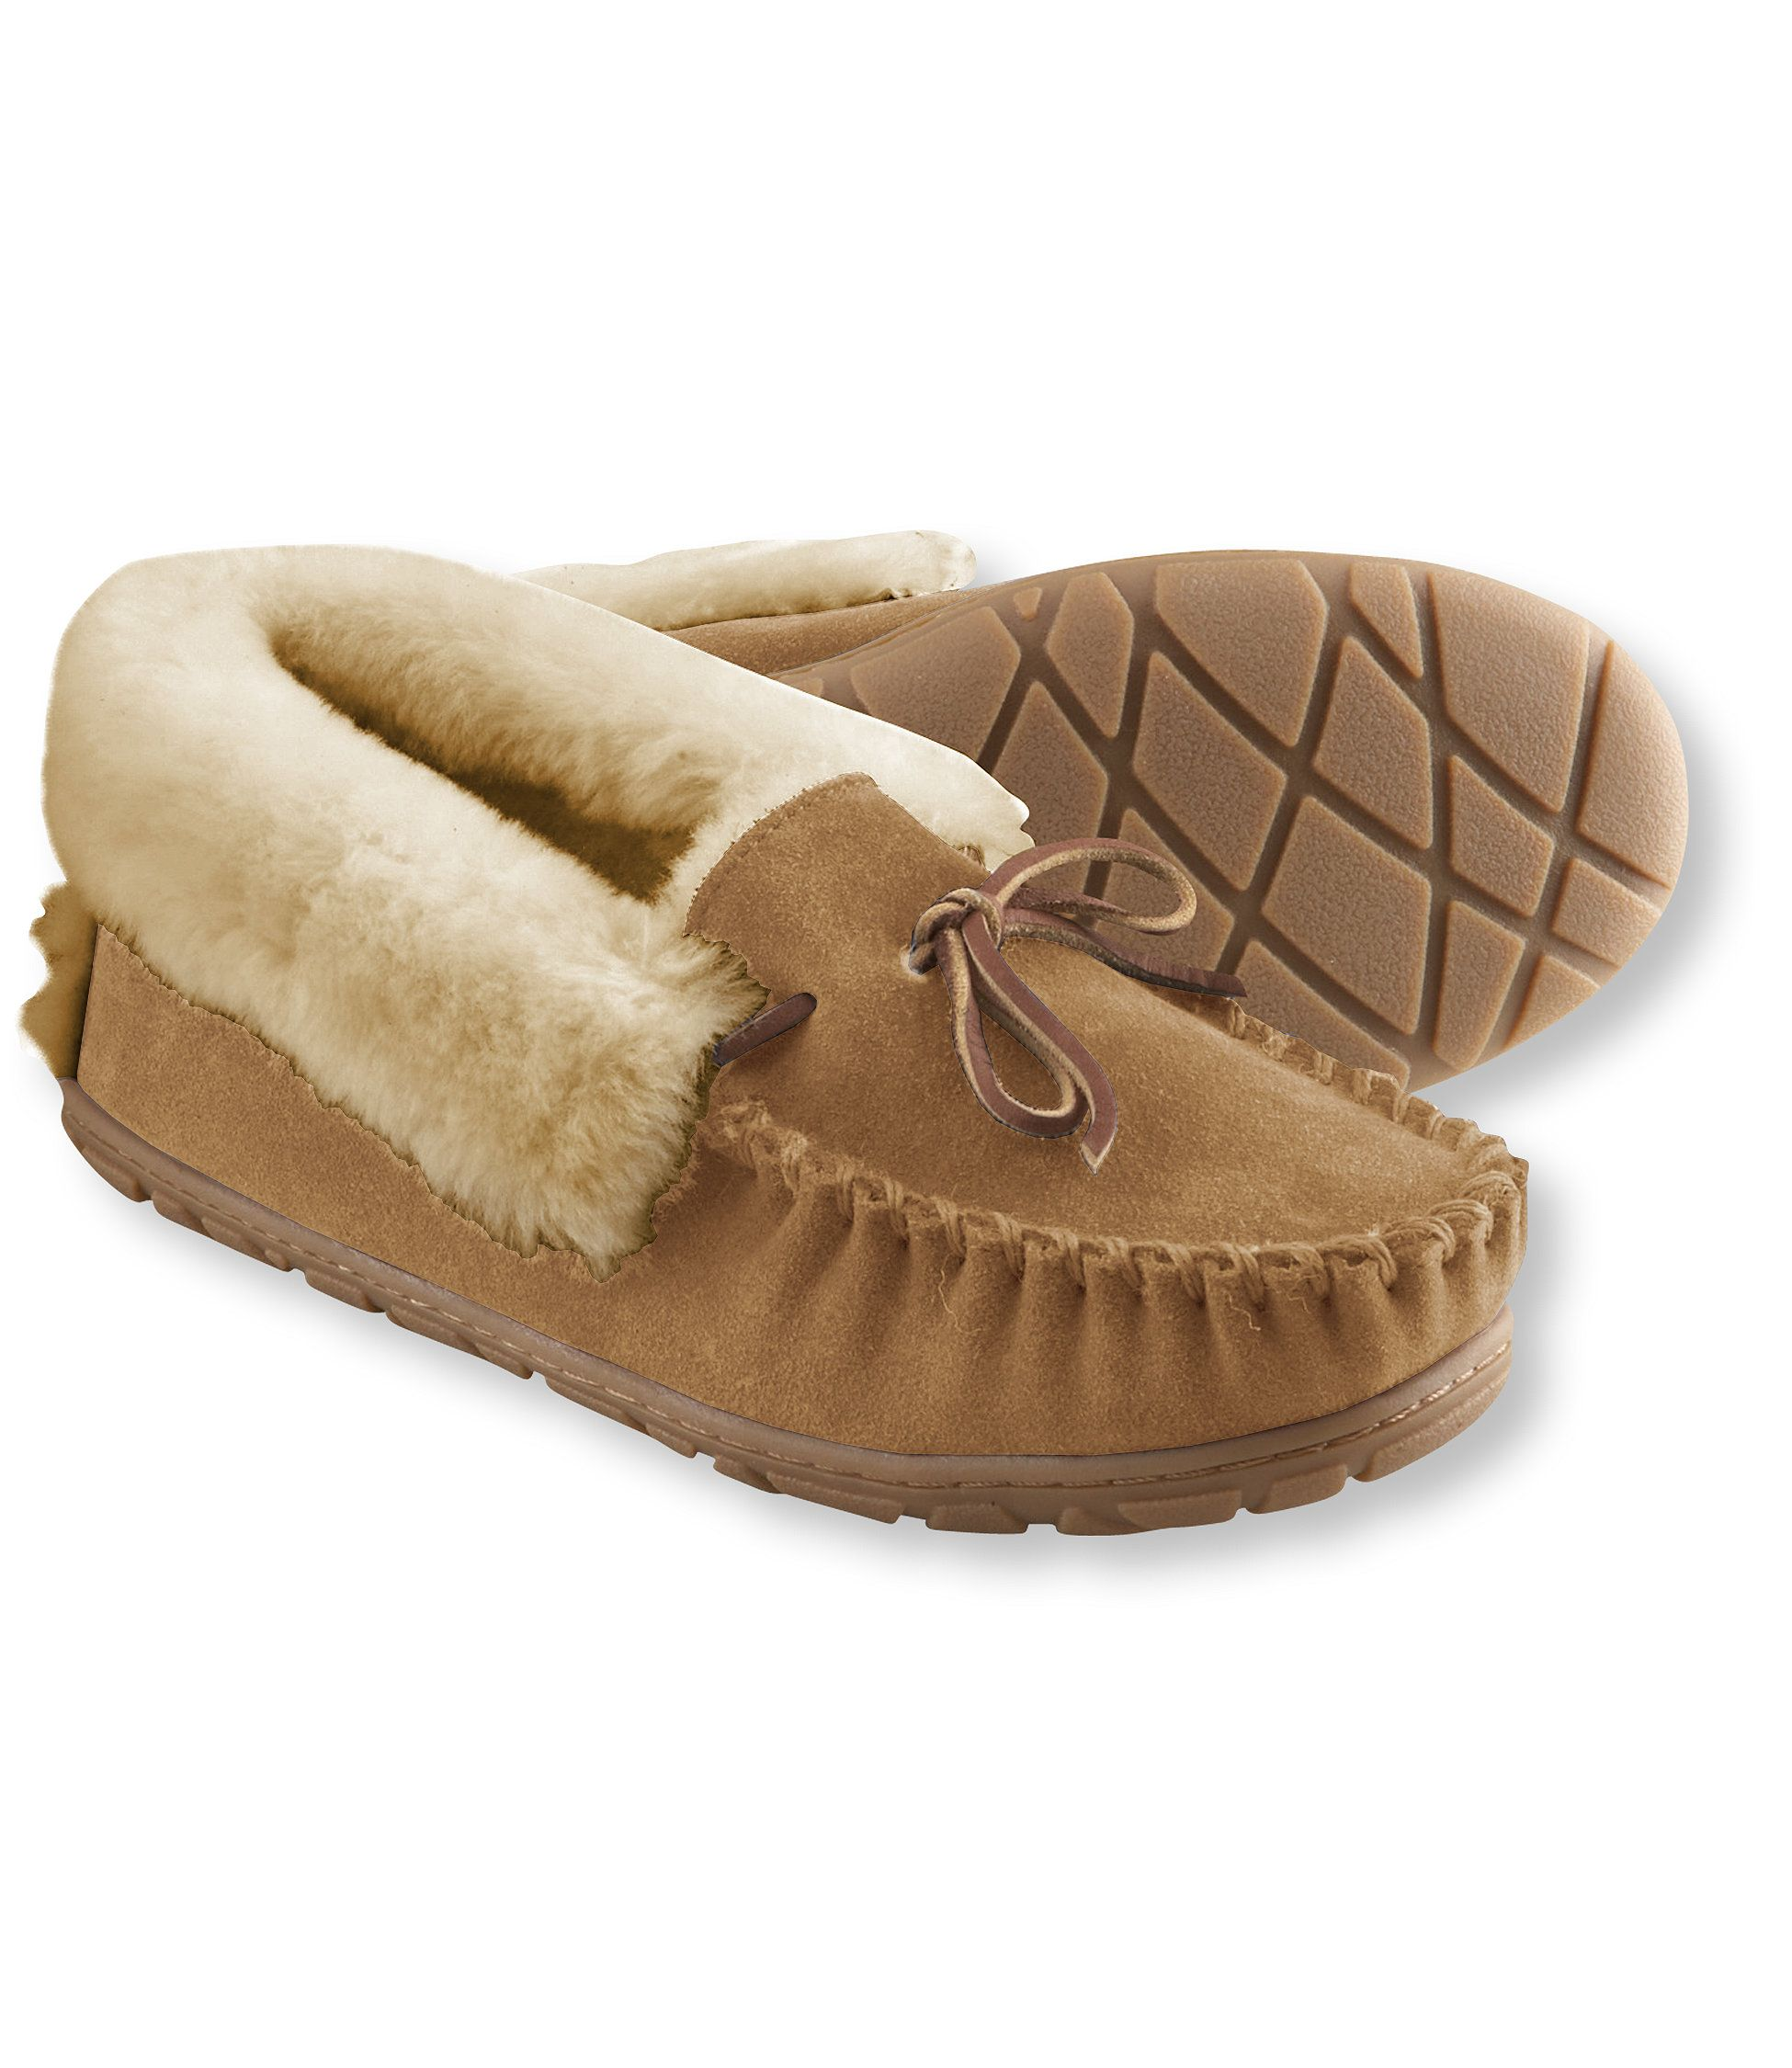 30c371bbff21 These LLBean slippers are the most comfortable and coziest slippers! This  winter